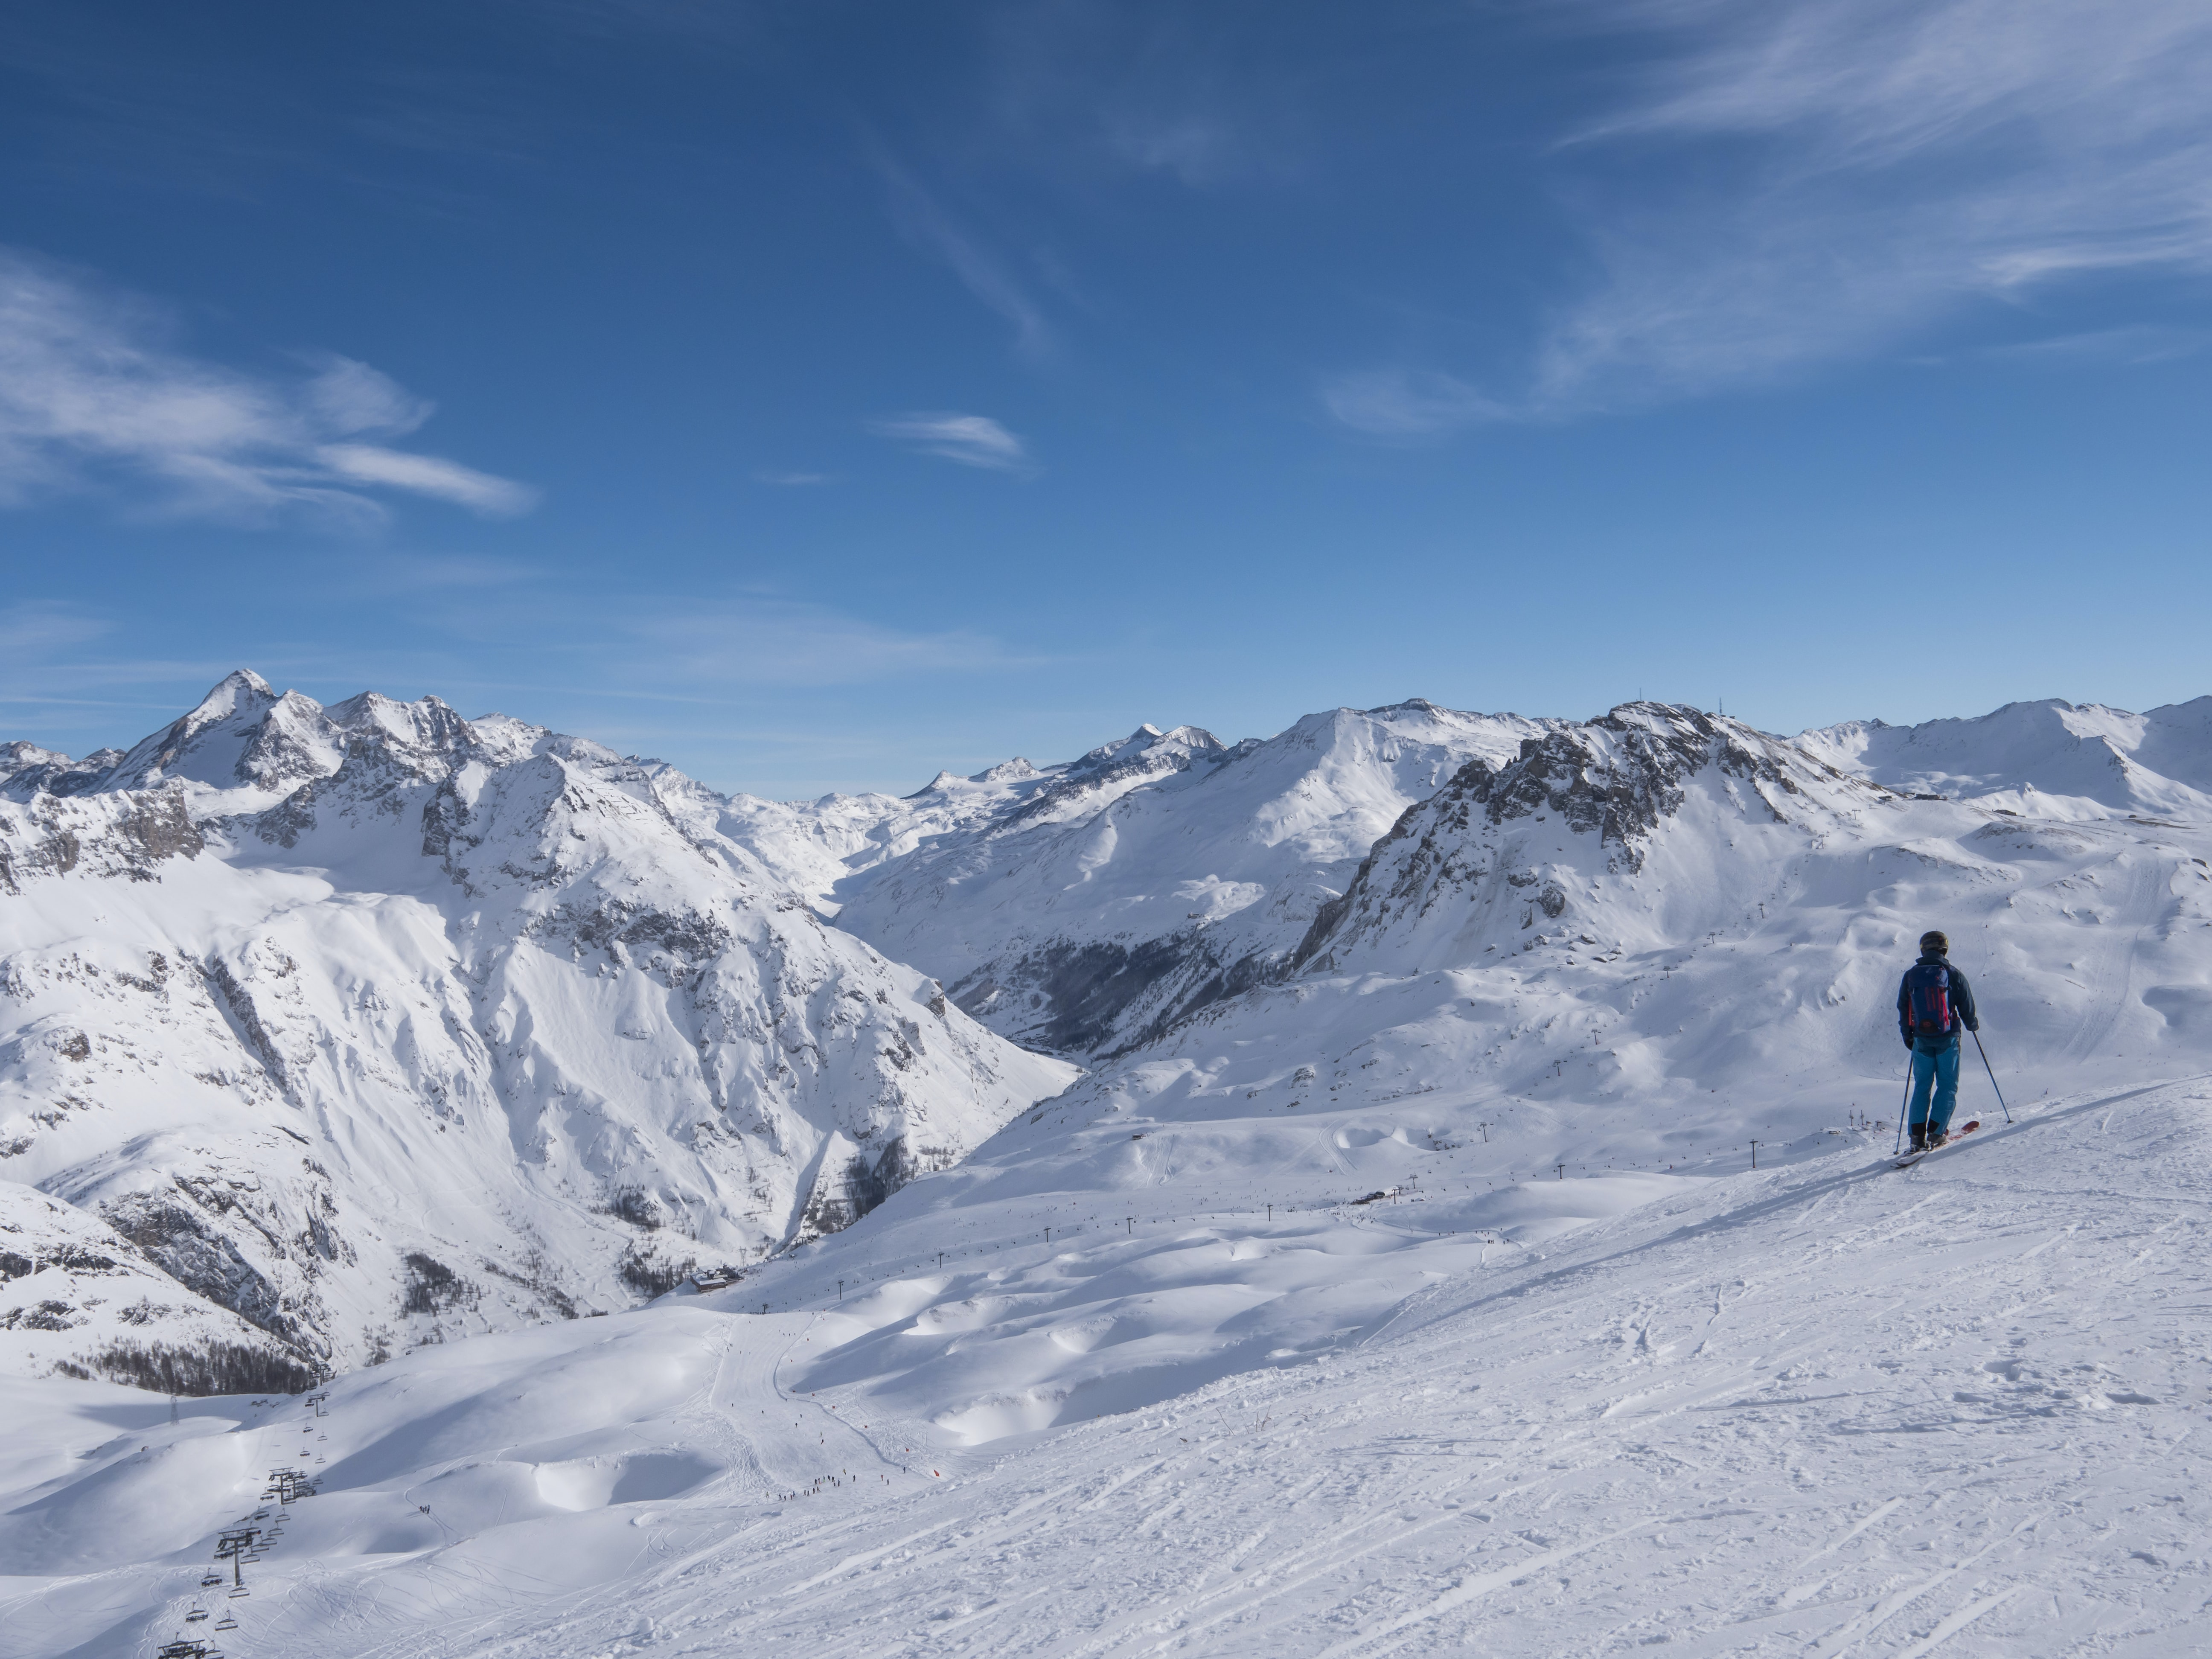 man ride on snow ski on top of mountain during blue sky